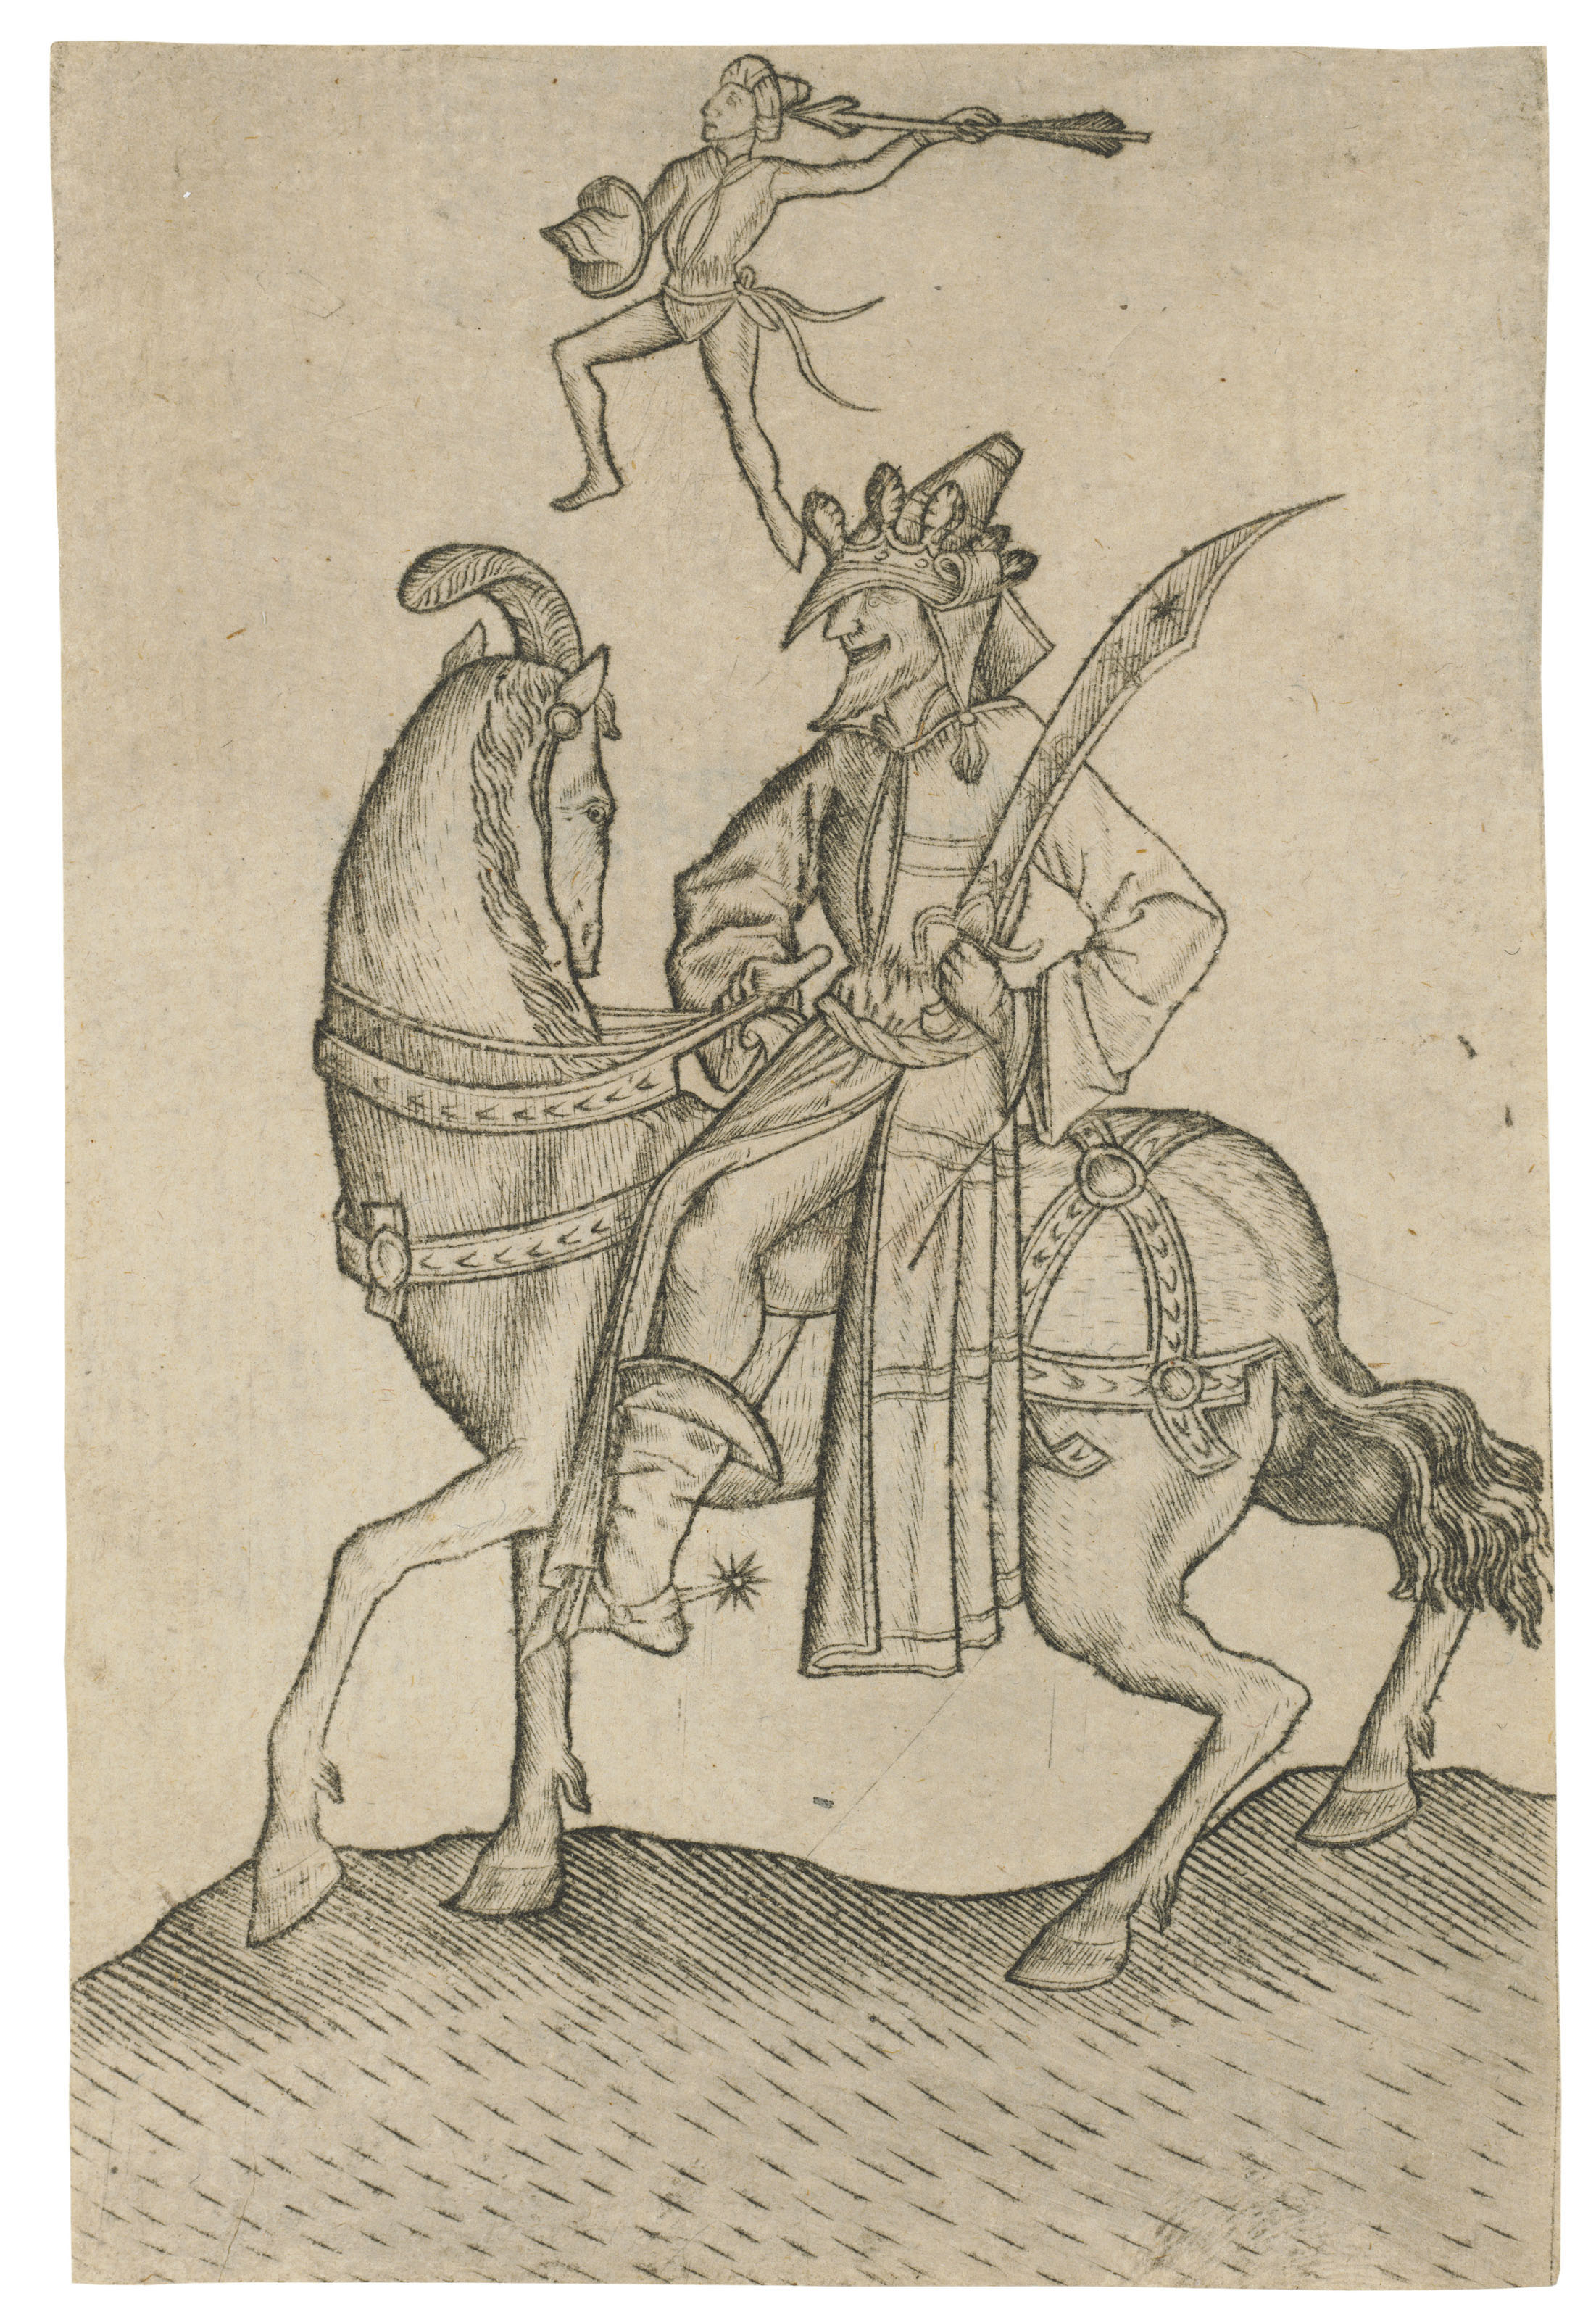 The King of Men, from: The Large Deck of Playing Cards